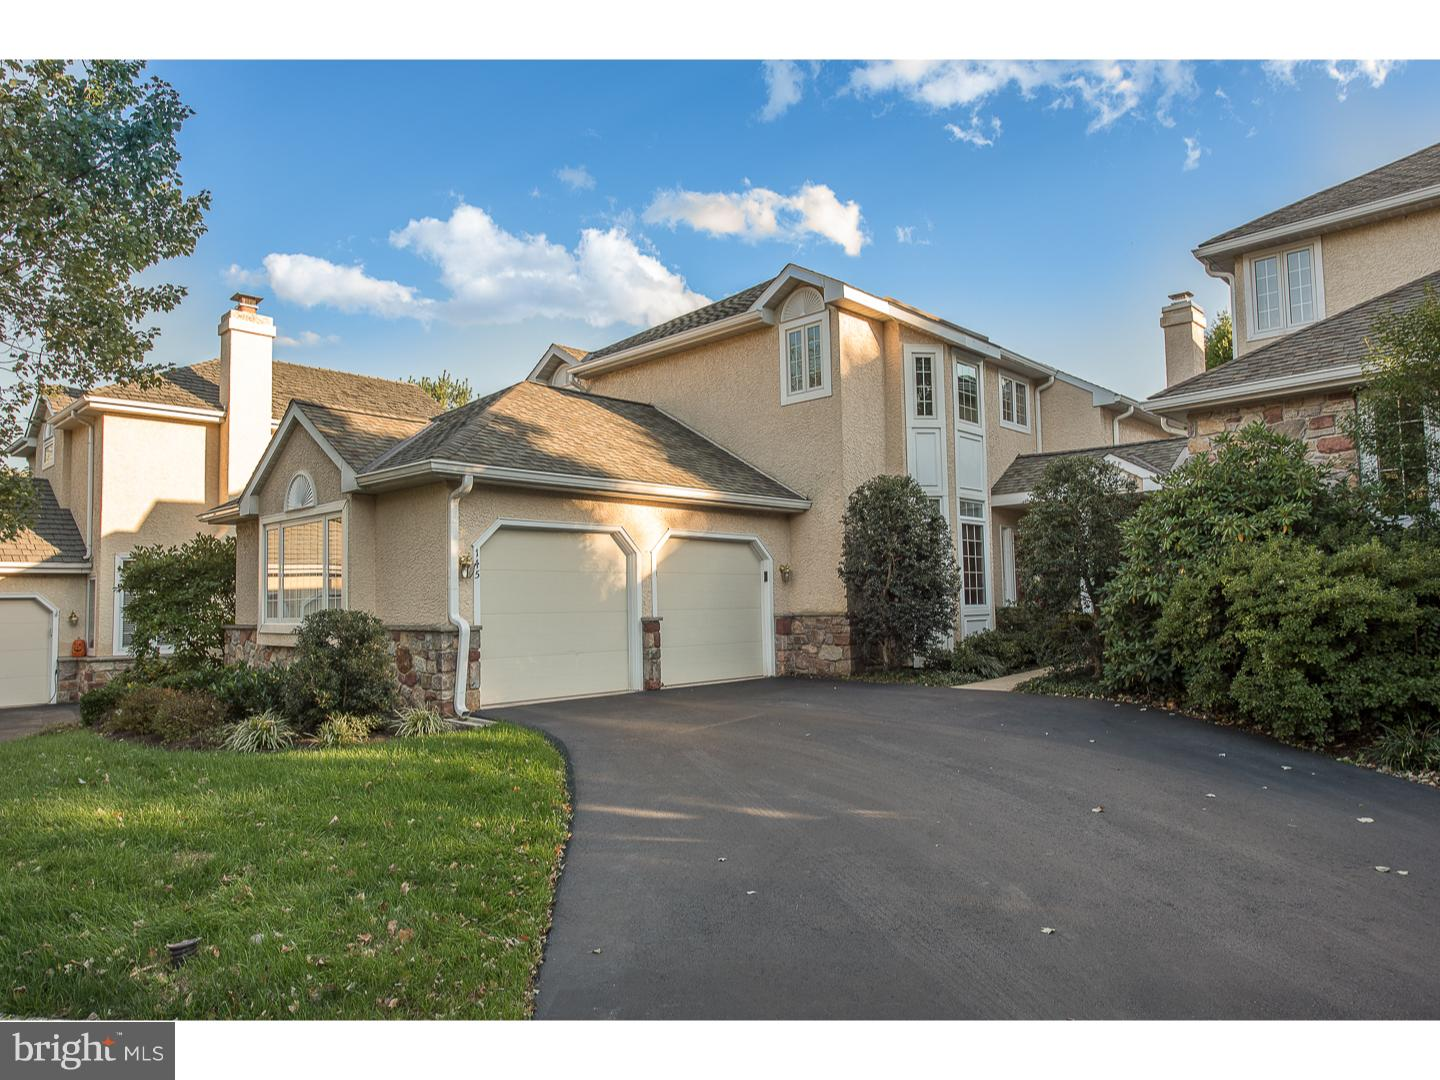 145 Tannery Run Circle #45 Berwyn, PA 19312